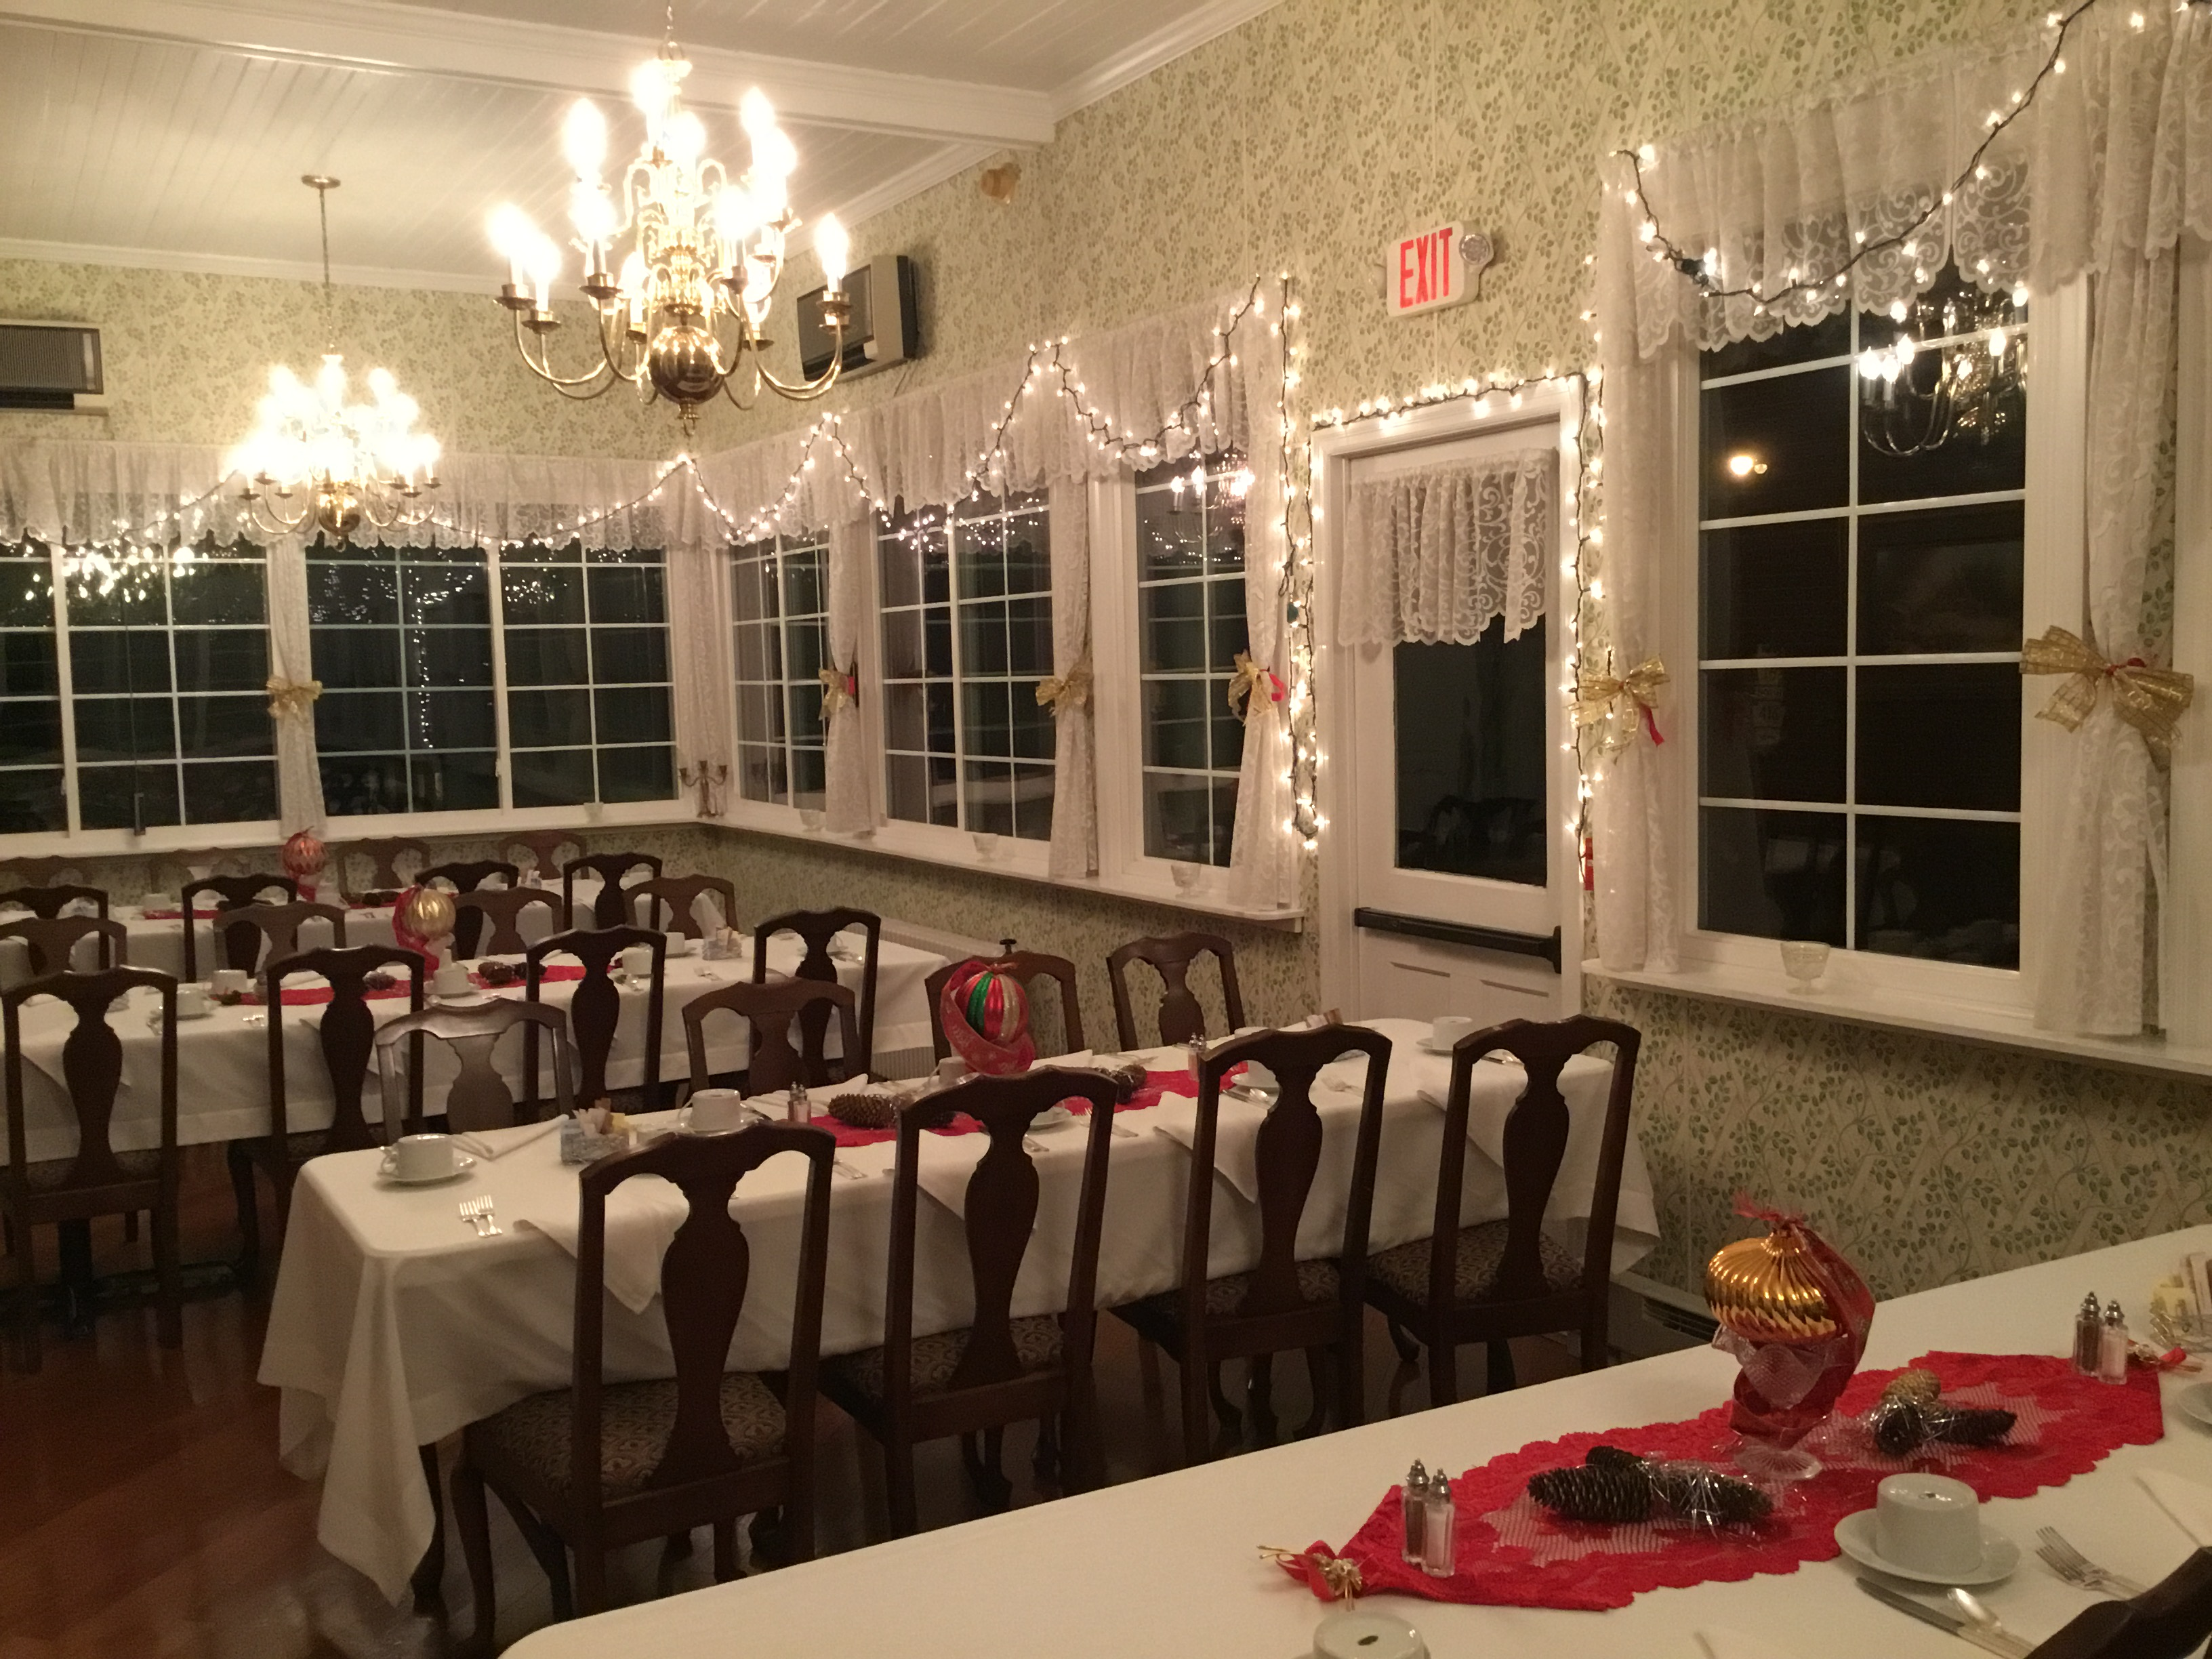 The porch dining room with Christmas decorations